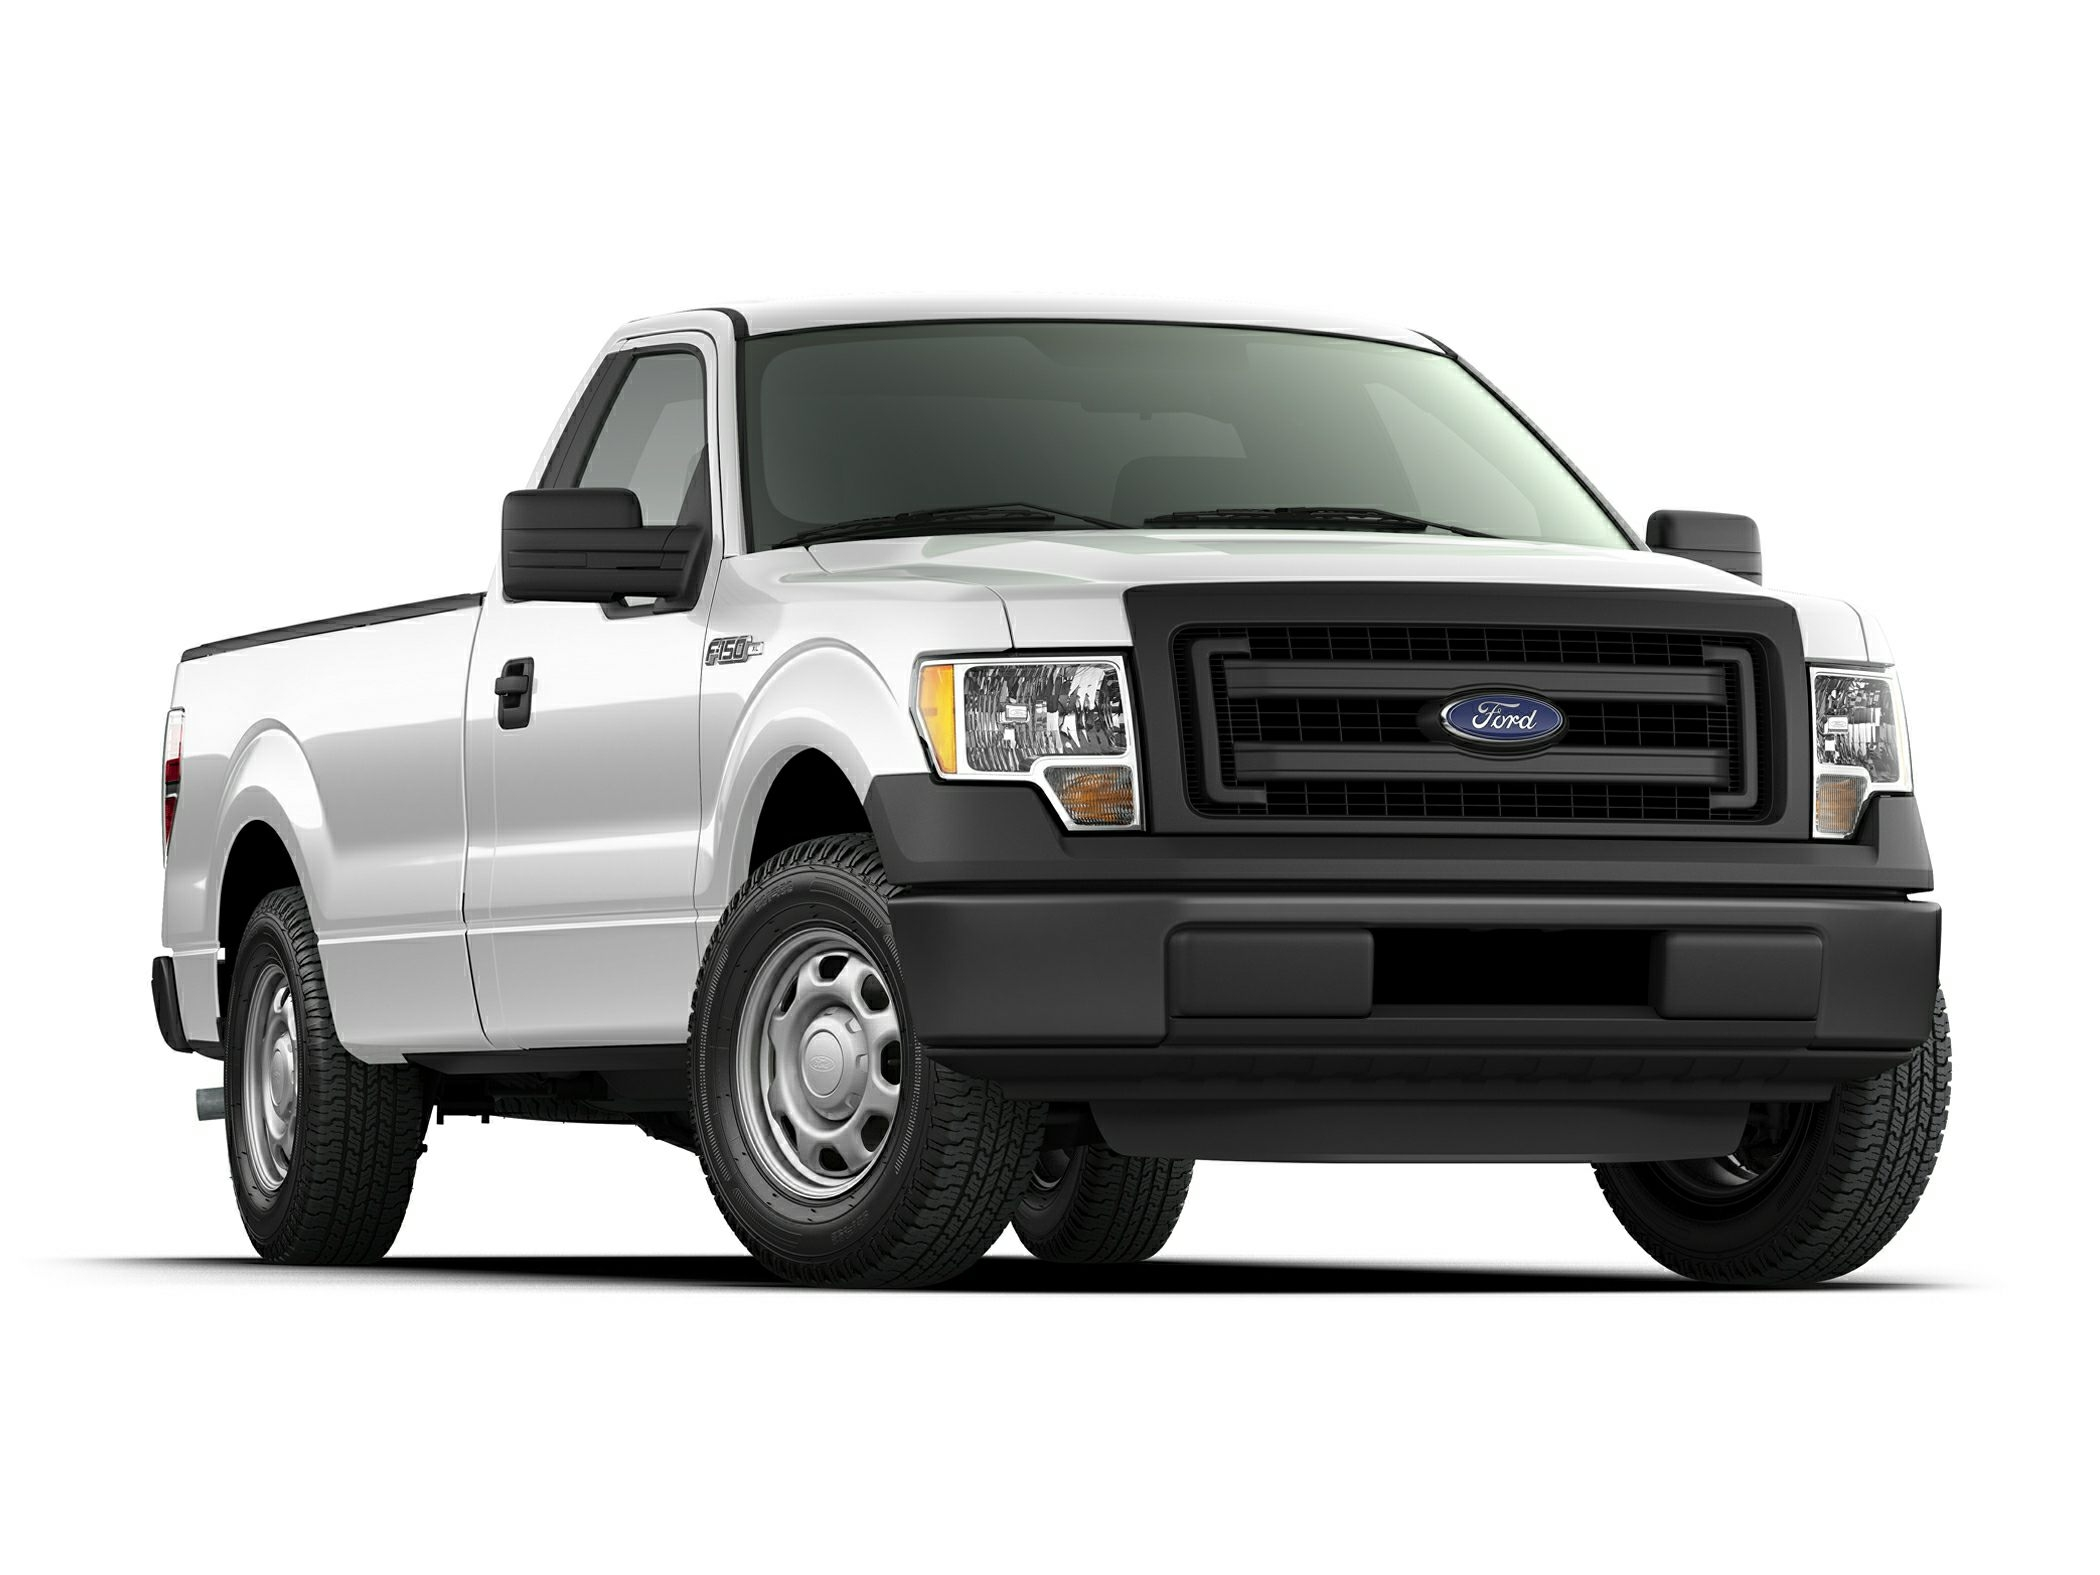 ford f 150 invoice price ford f 150 cost design ideas 15 photos of the 2015 ford f 150 2100 X 1575